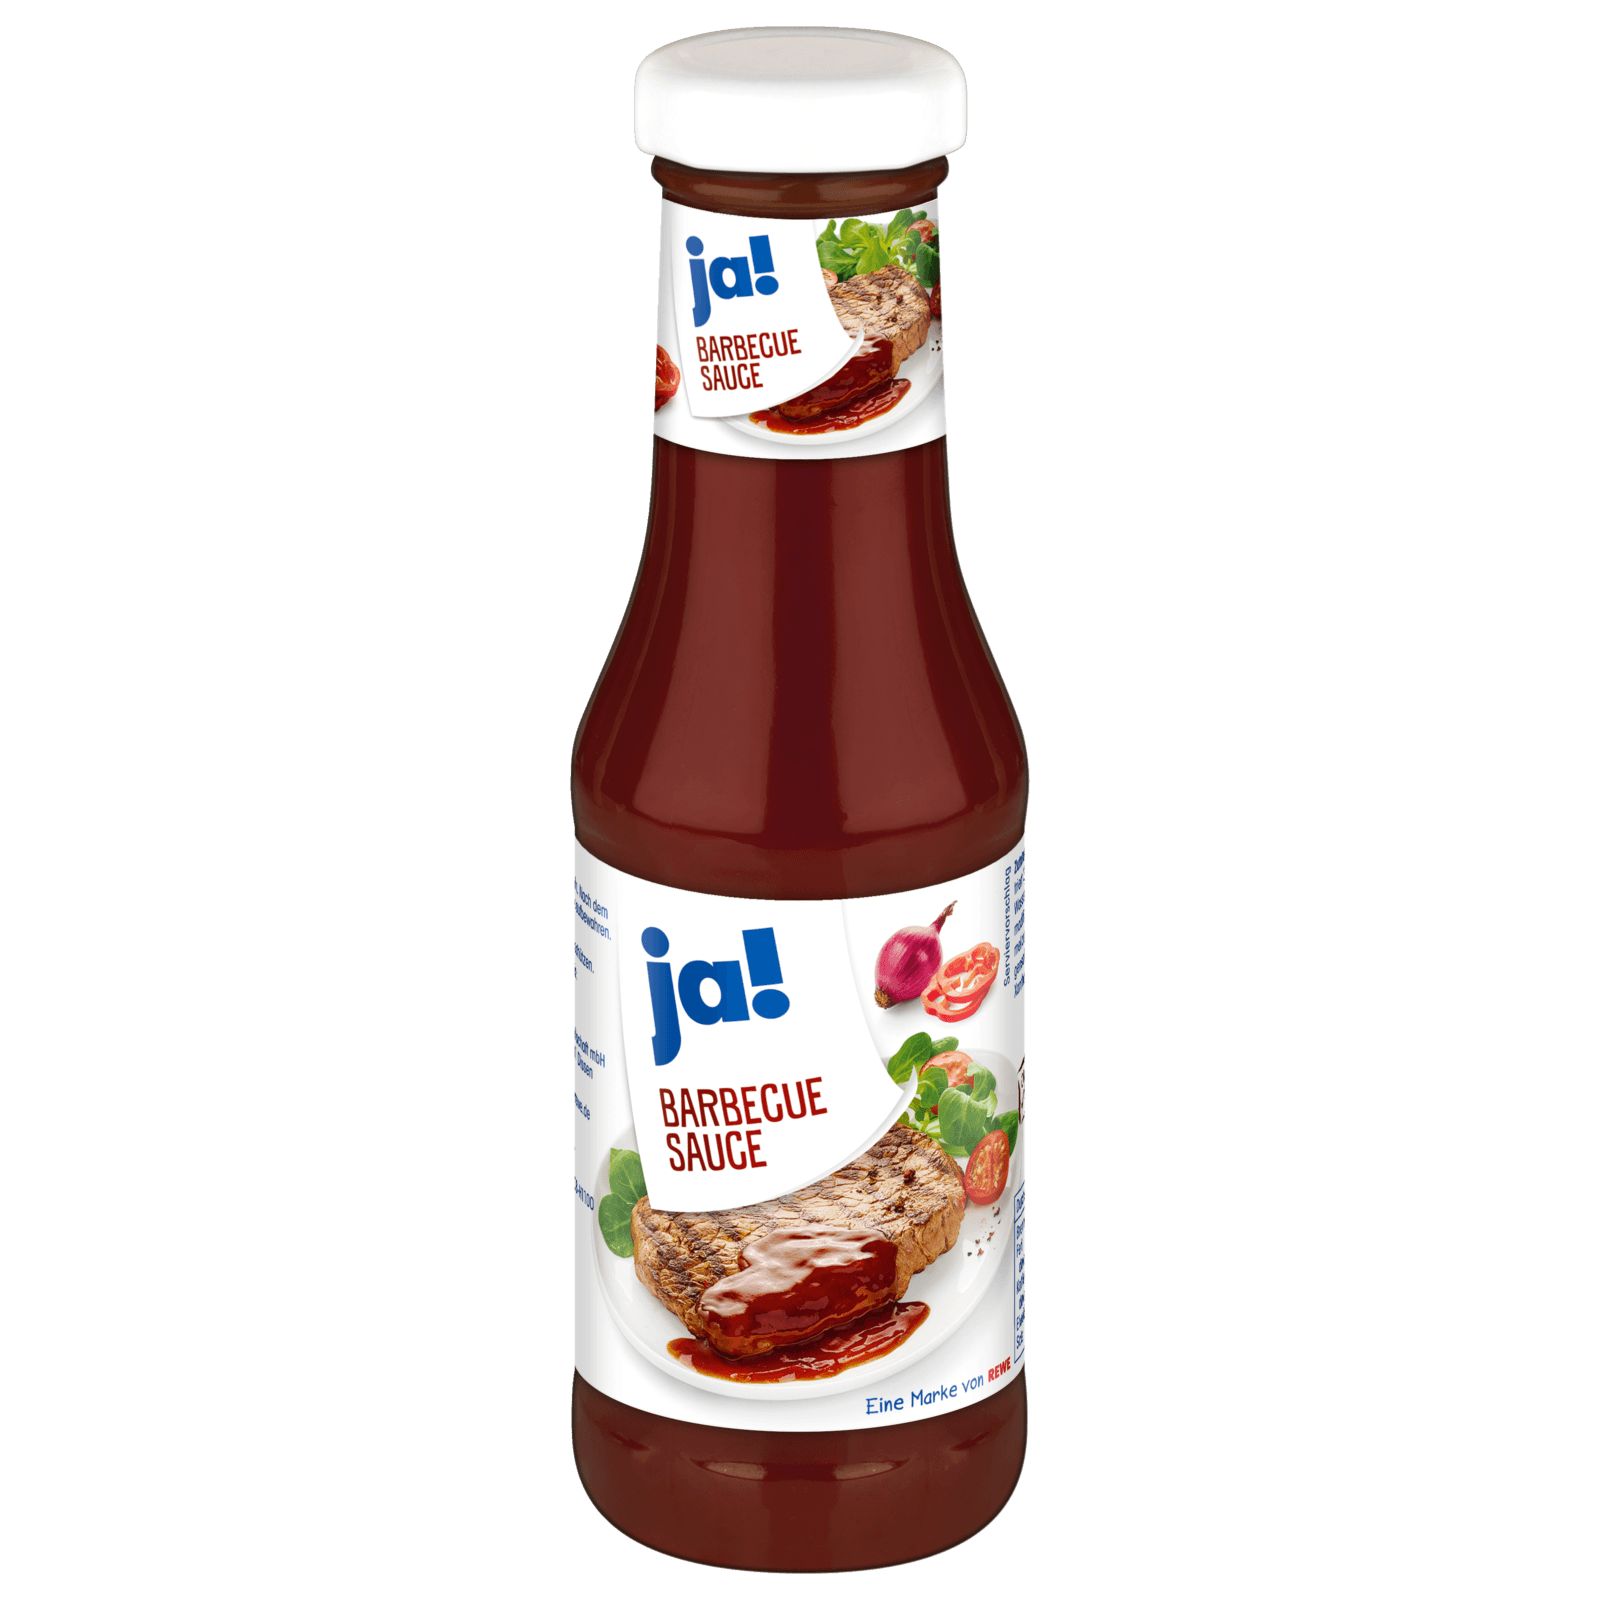 ja! Barbecue Sauce 300ml